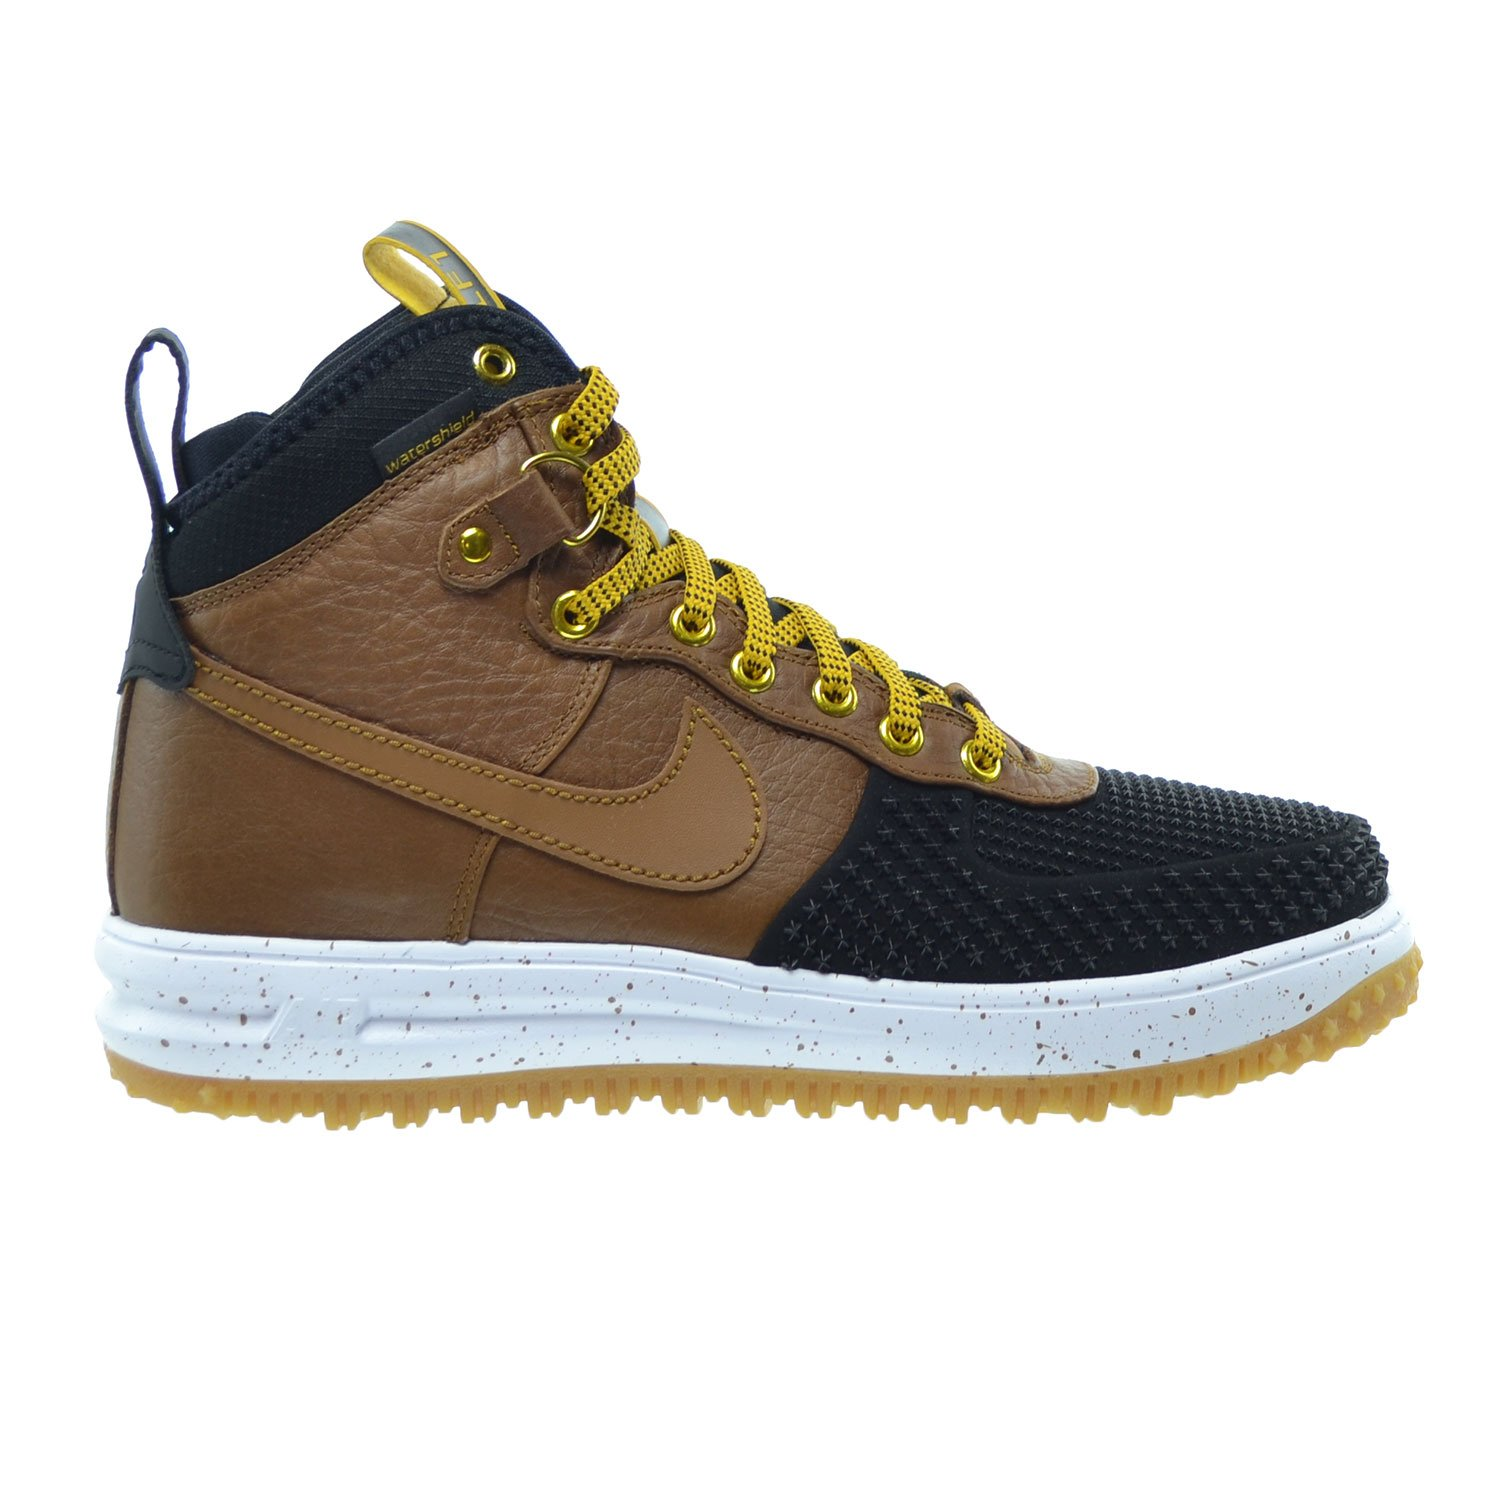 Nike Air Force 1 Pointure De La Chaussure De Canard 12 CLJkP